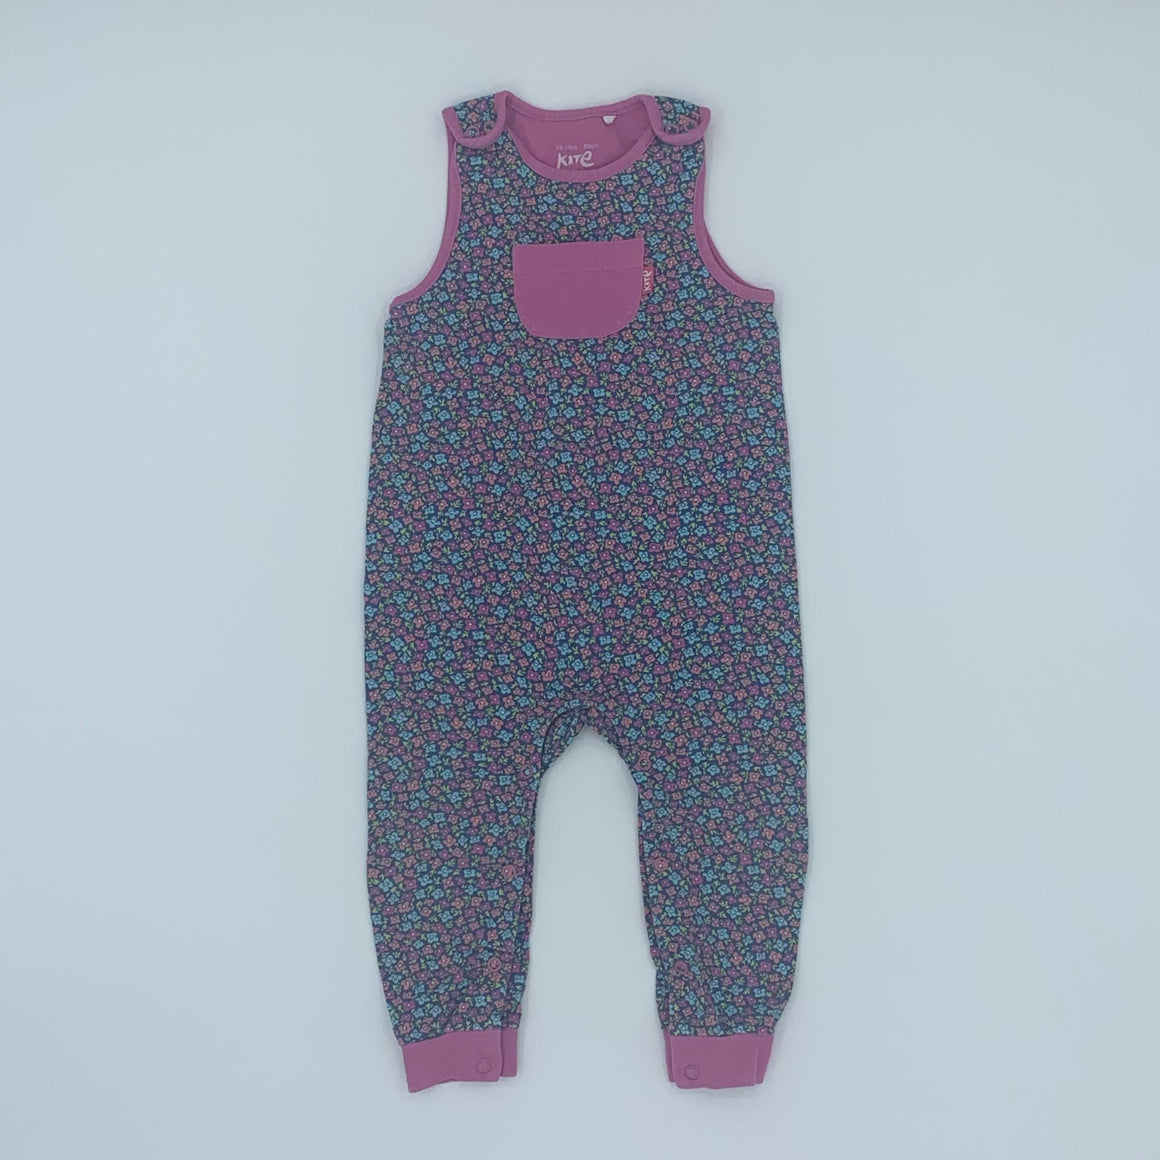 Gently Worn Kite flower romper dungarees size 12-18 months